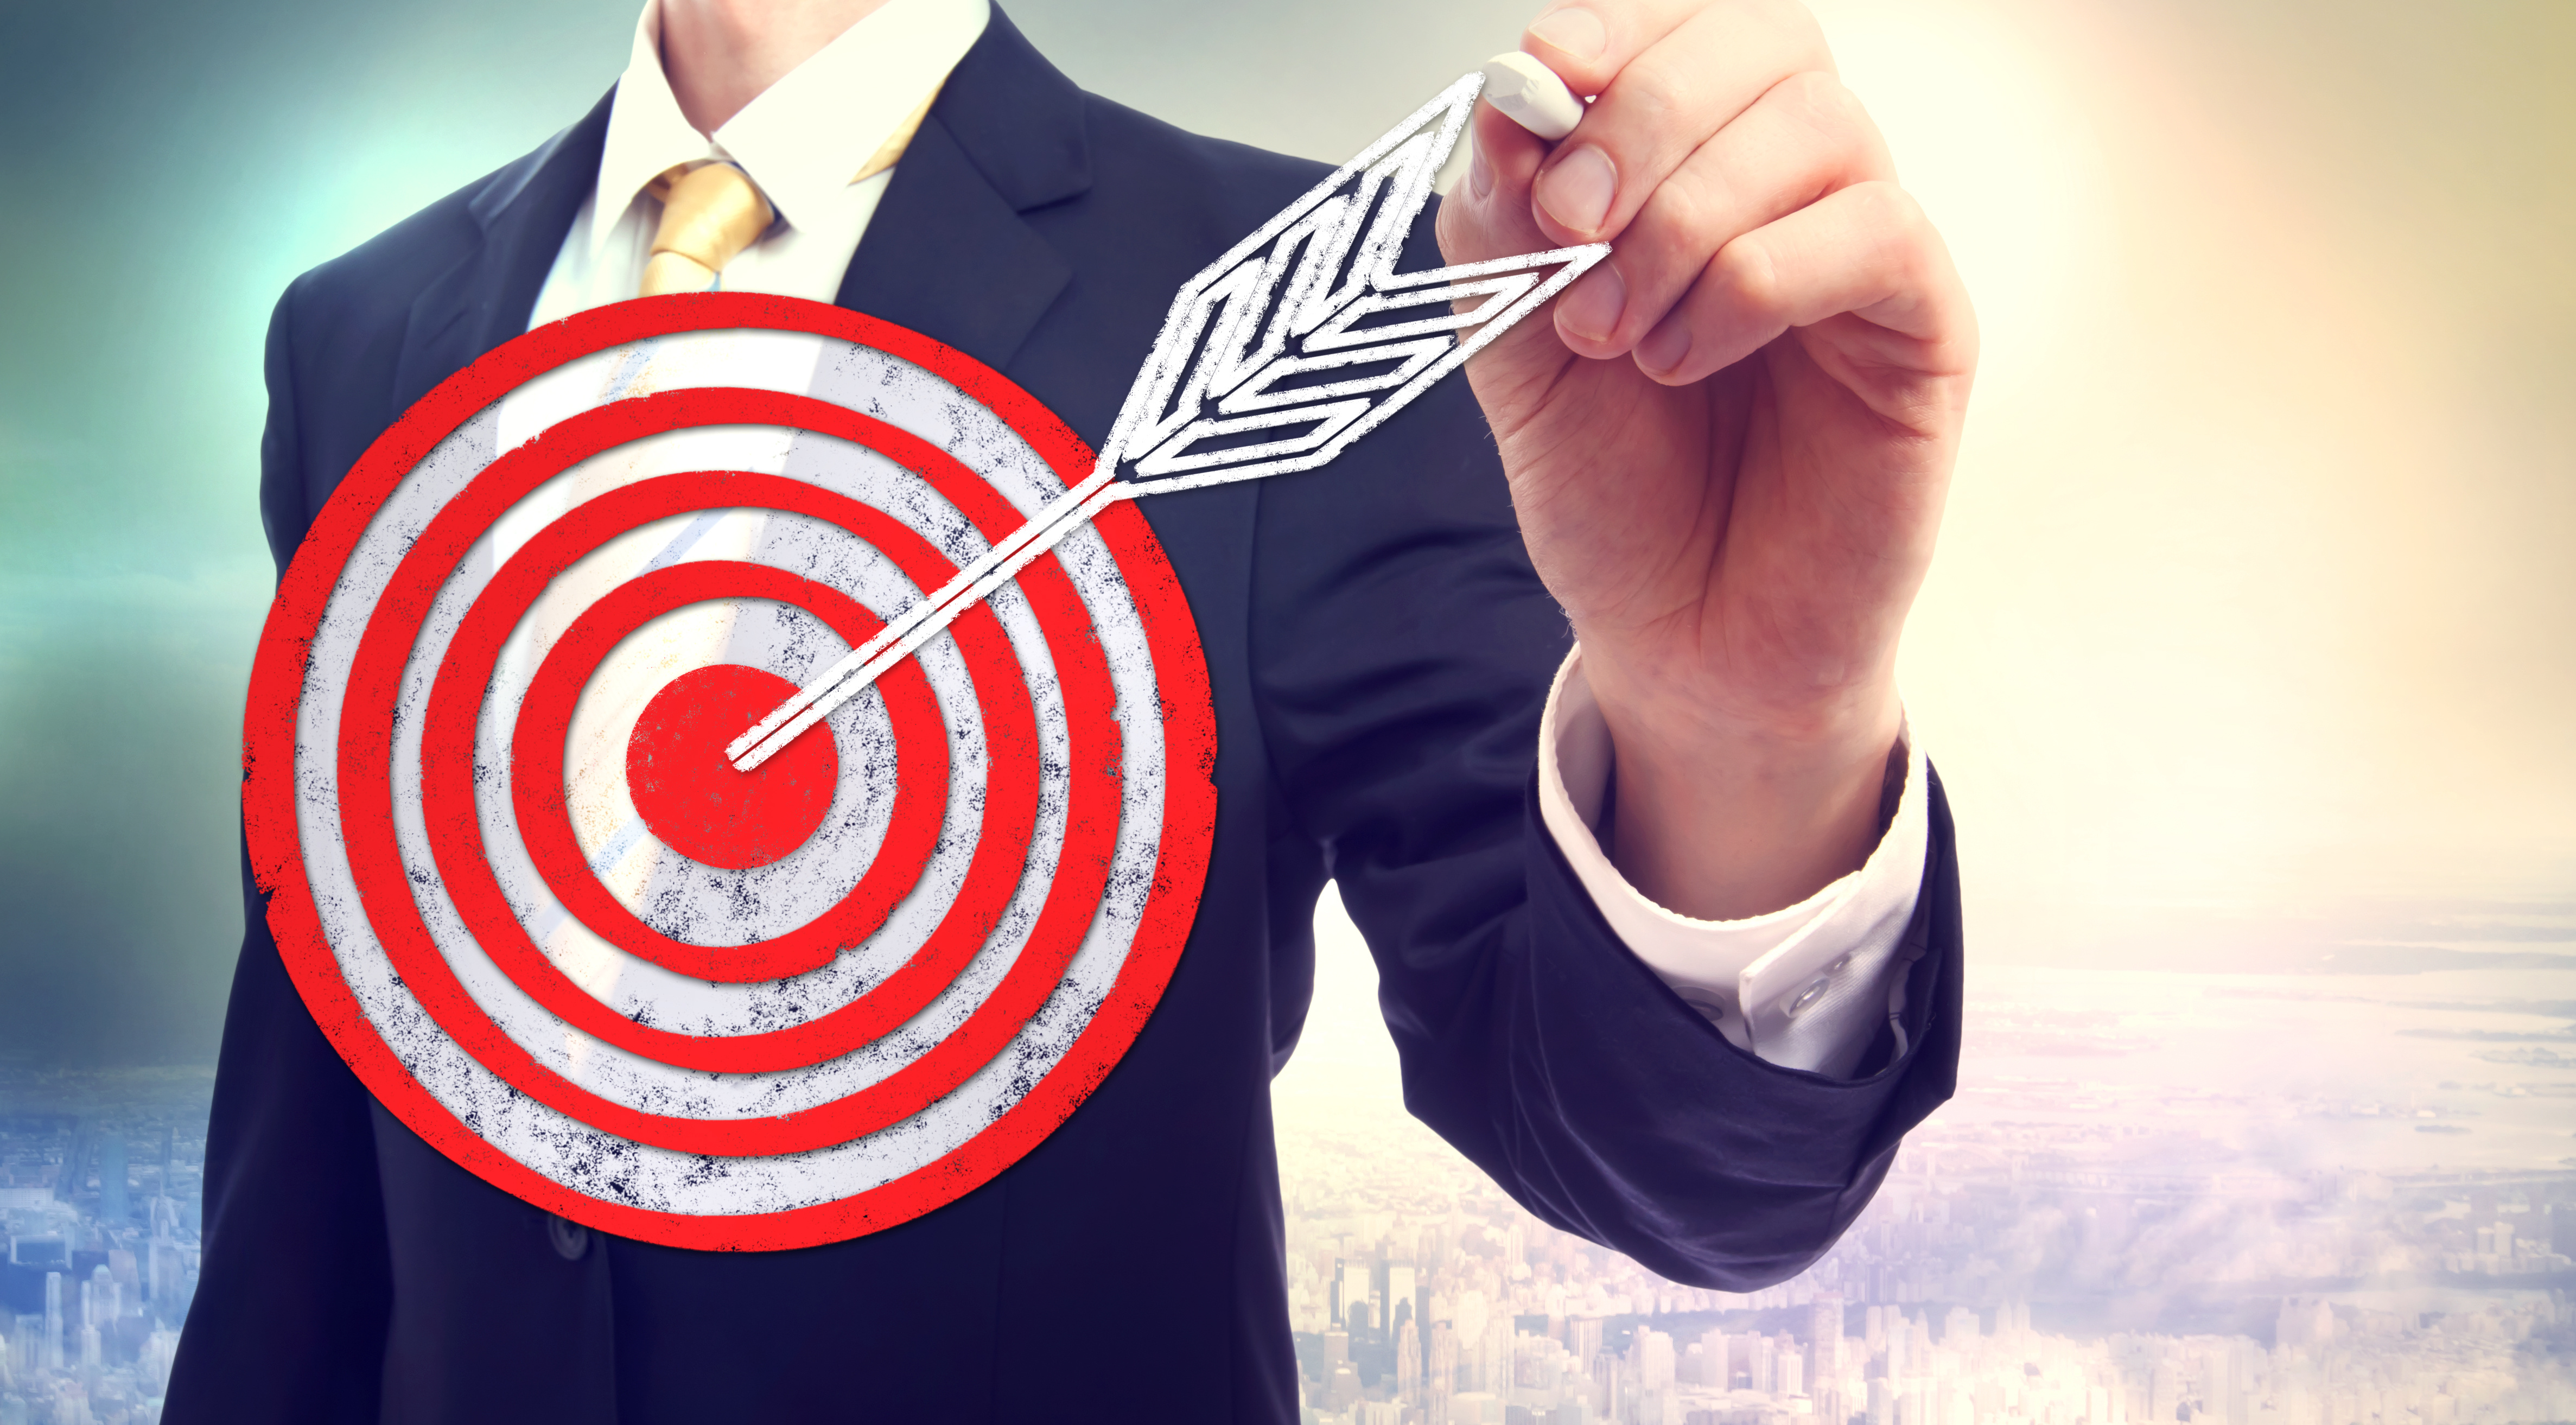 targets marketing plan If you're planning a group of campaigns for your marketing plan, it's good practice to start with your annual goals and work backward to develop campaigns to meet those numbers.